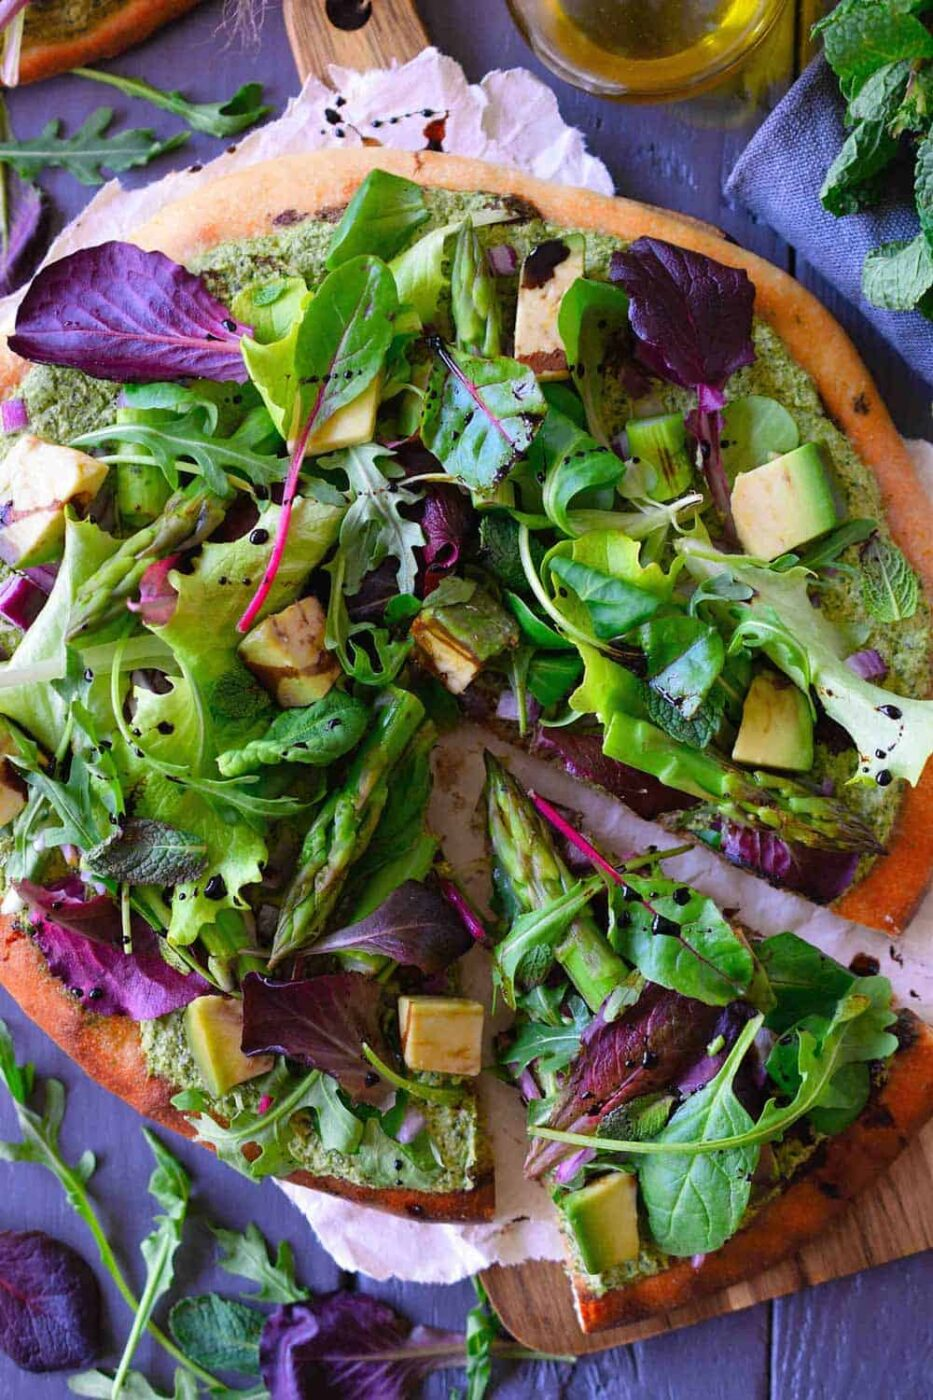 Green pizza with herbed vegan cashew cheese + 15 Farmers market recipes to make in April! Delicious, vegetarian, (mostly) healthy spring recipes made with fresh, seasonal produce from your local farmers market or CSA bin. Eat local! // Rhubarbarians